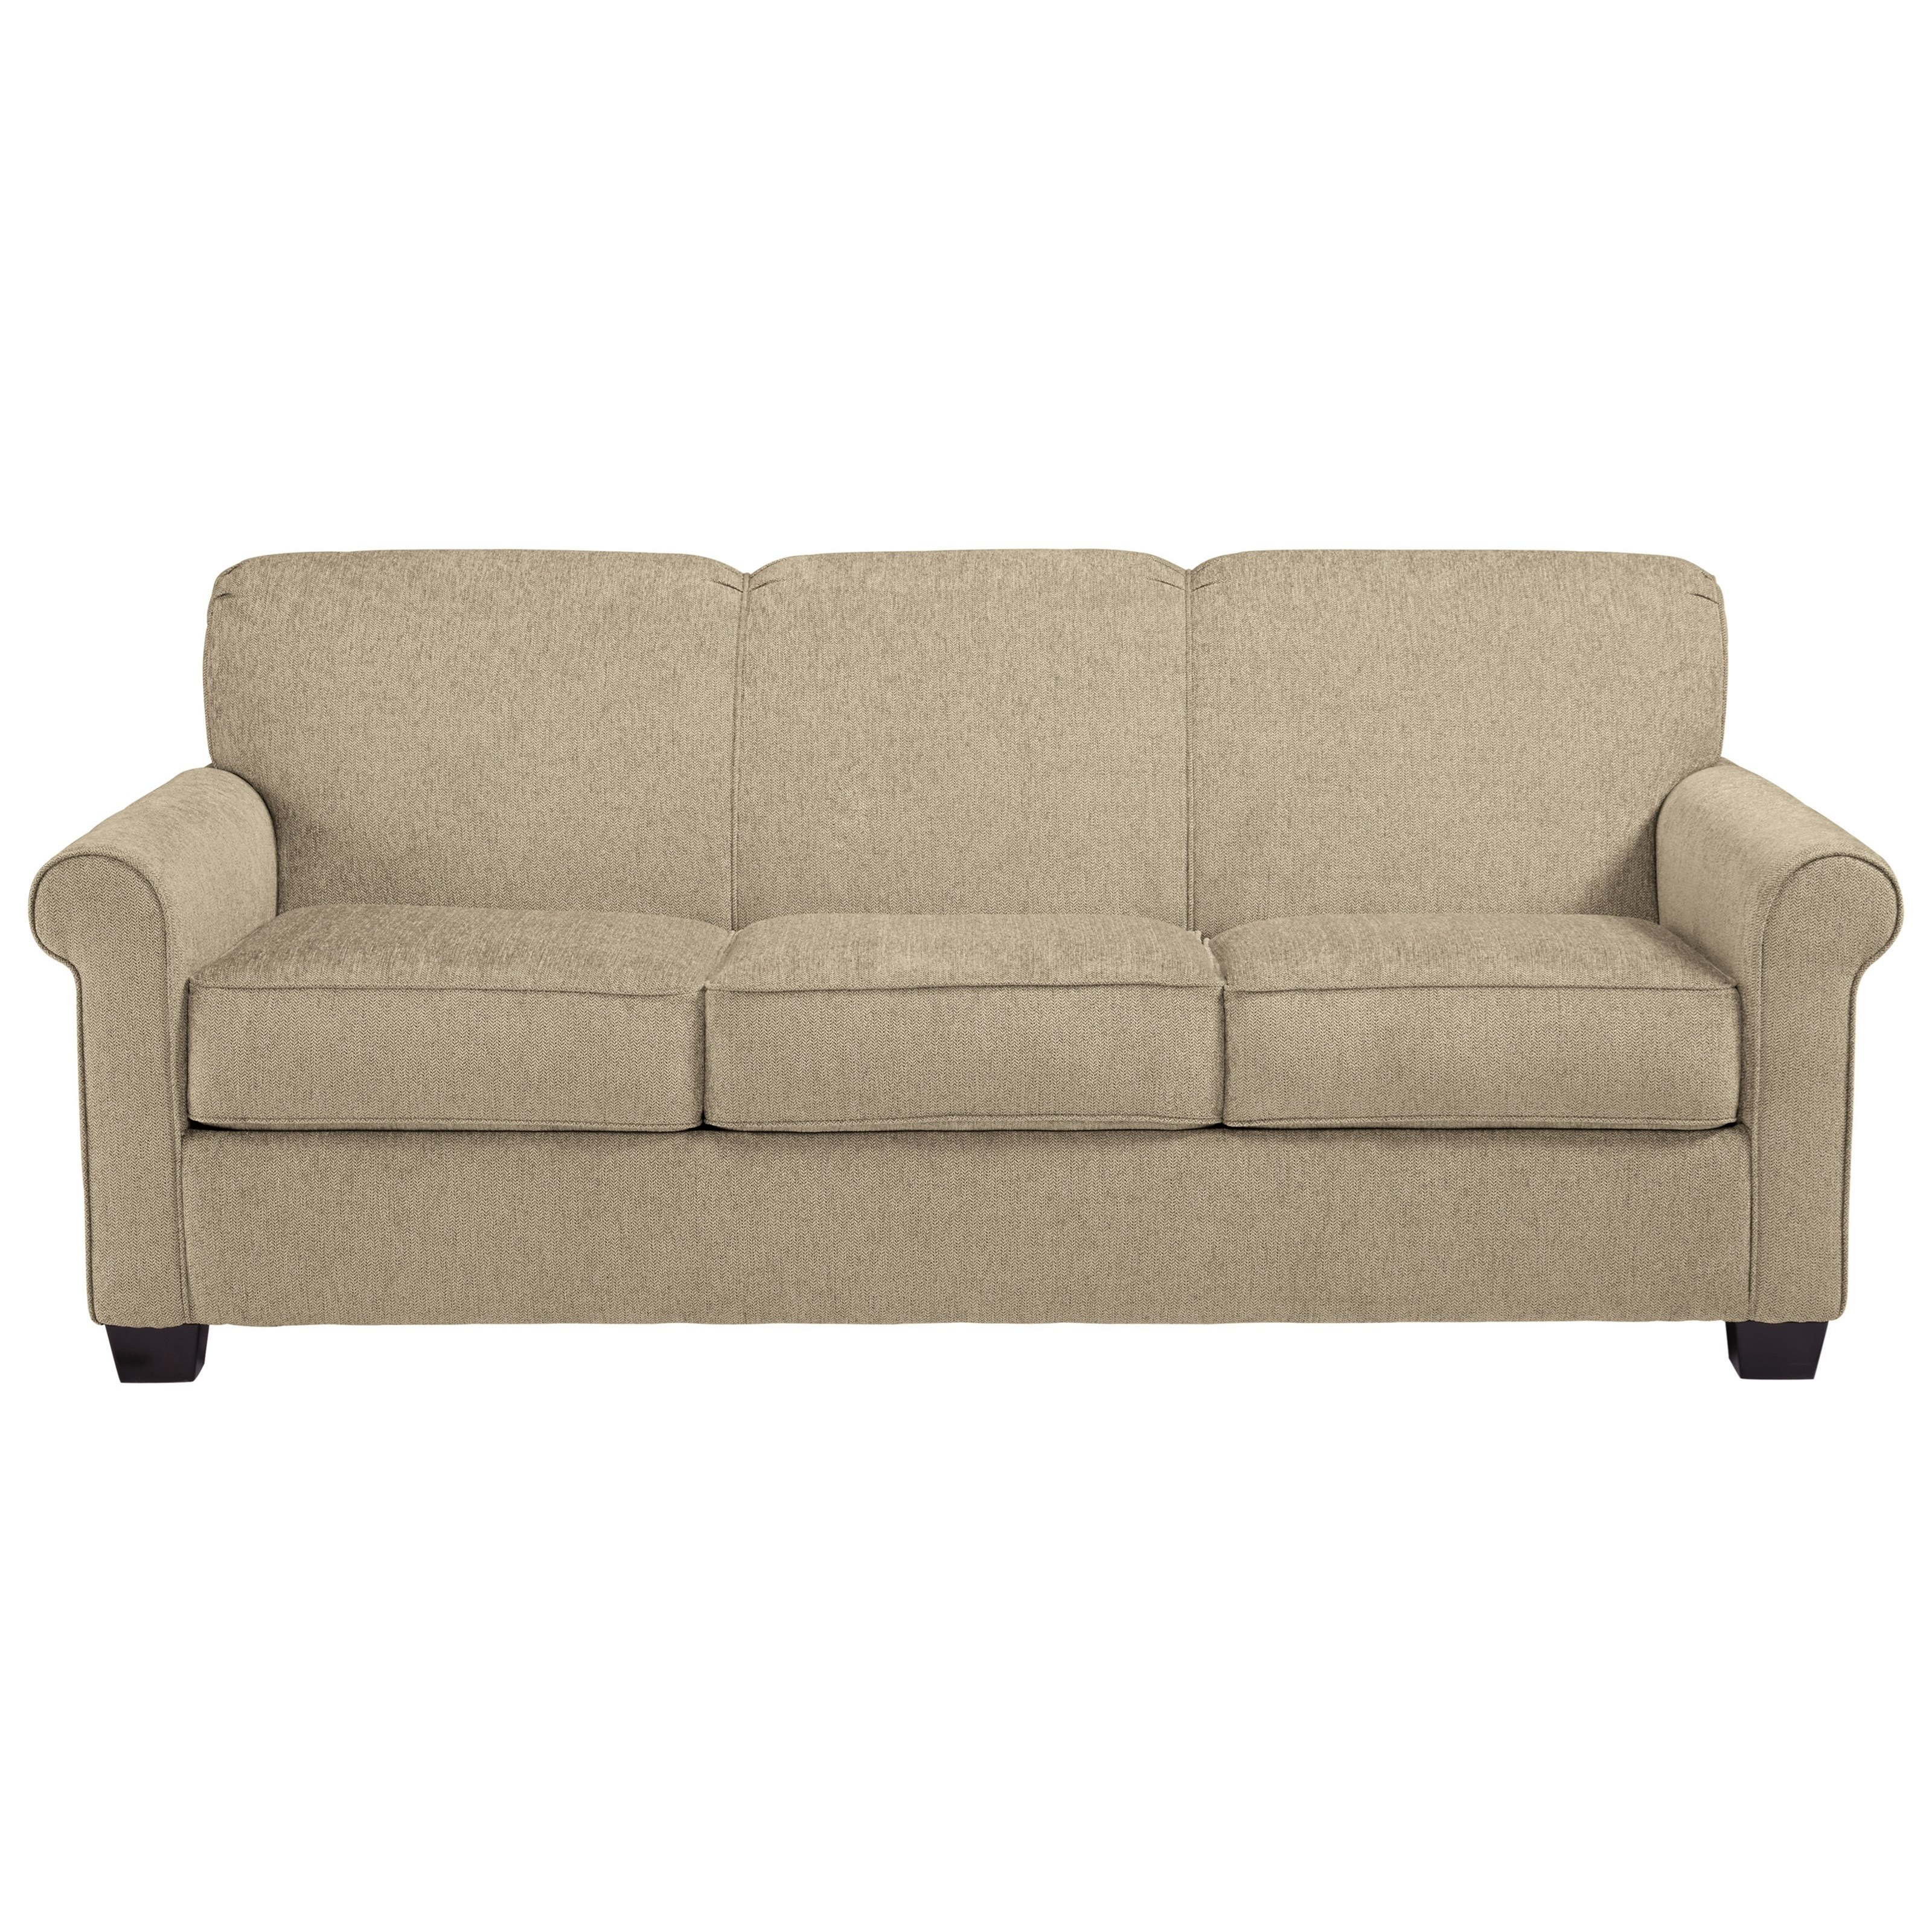 Cansler  Queen Sofa Sleeper by Signature Design by Ashley at Lapeer Furniture & Mattress Center